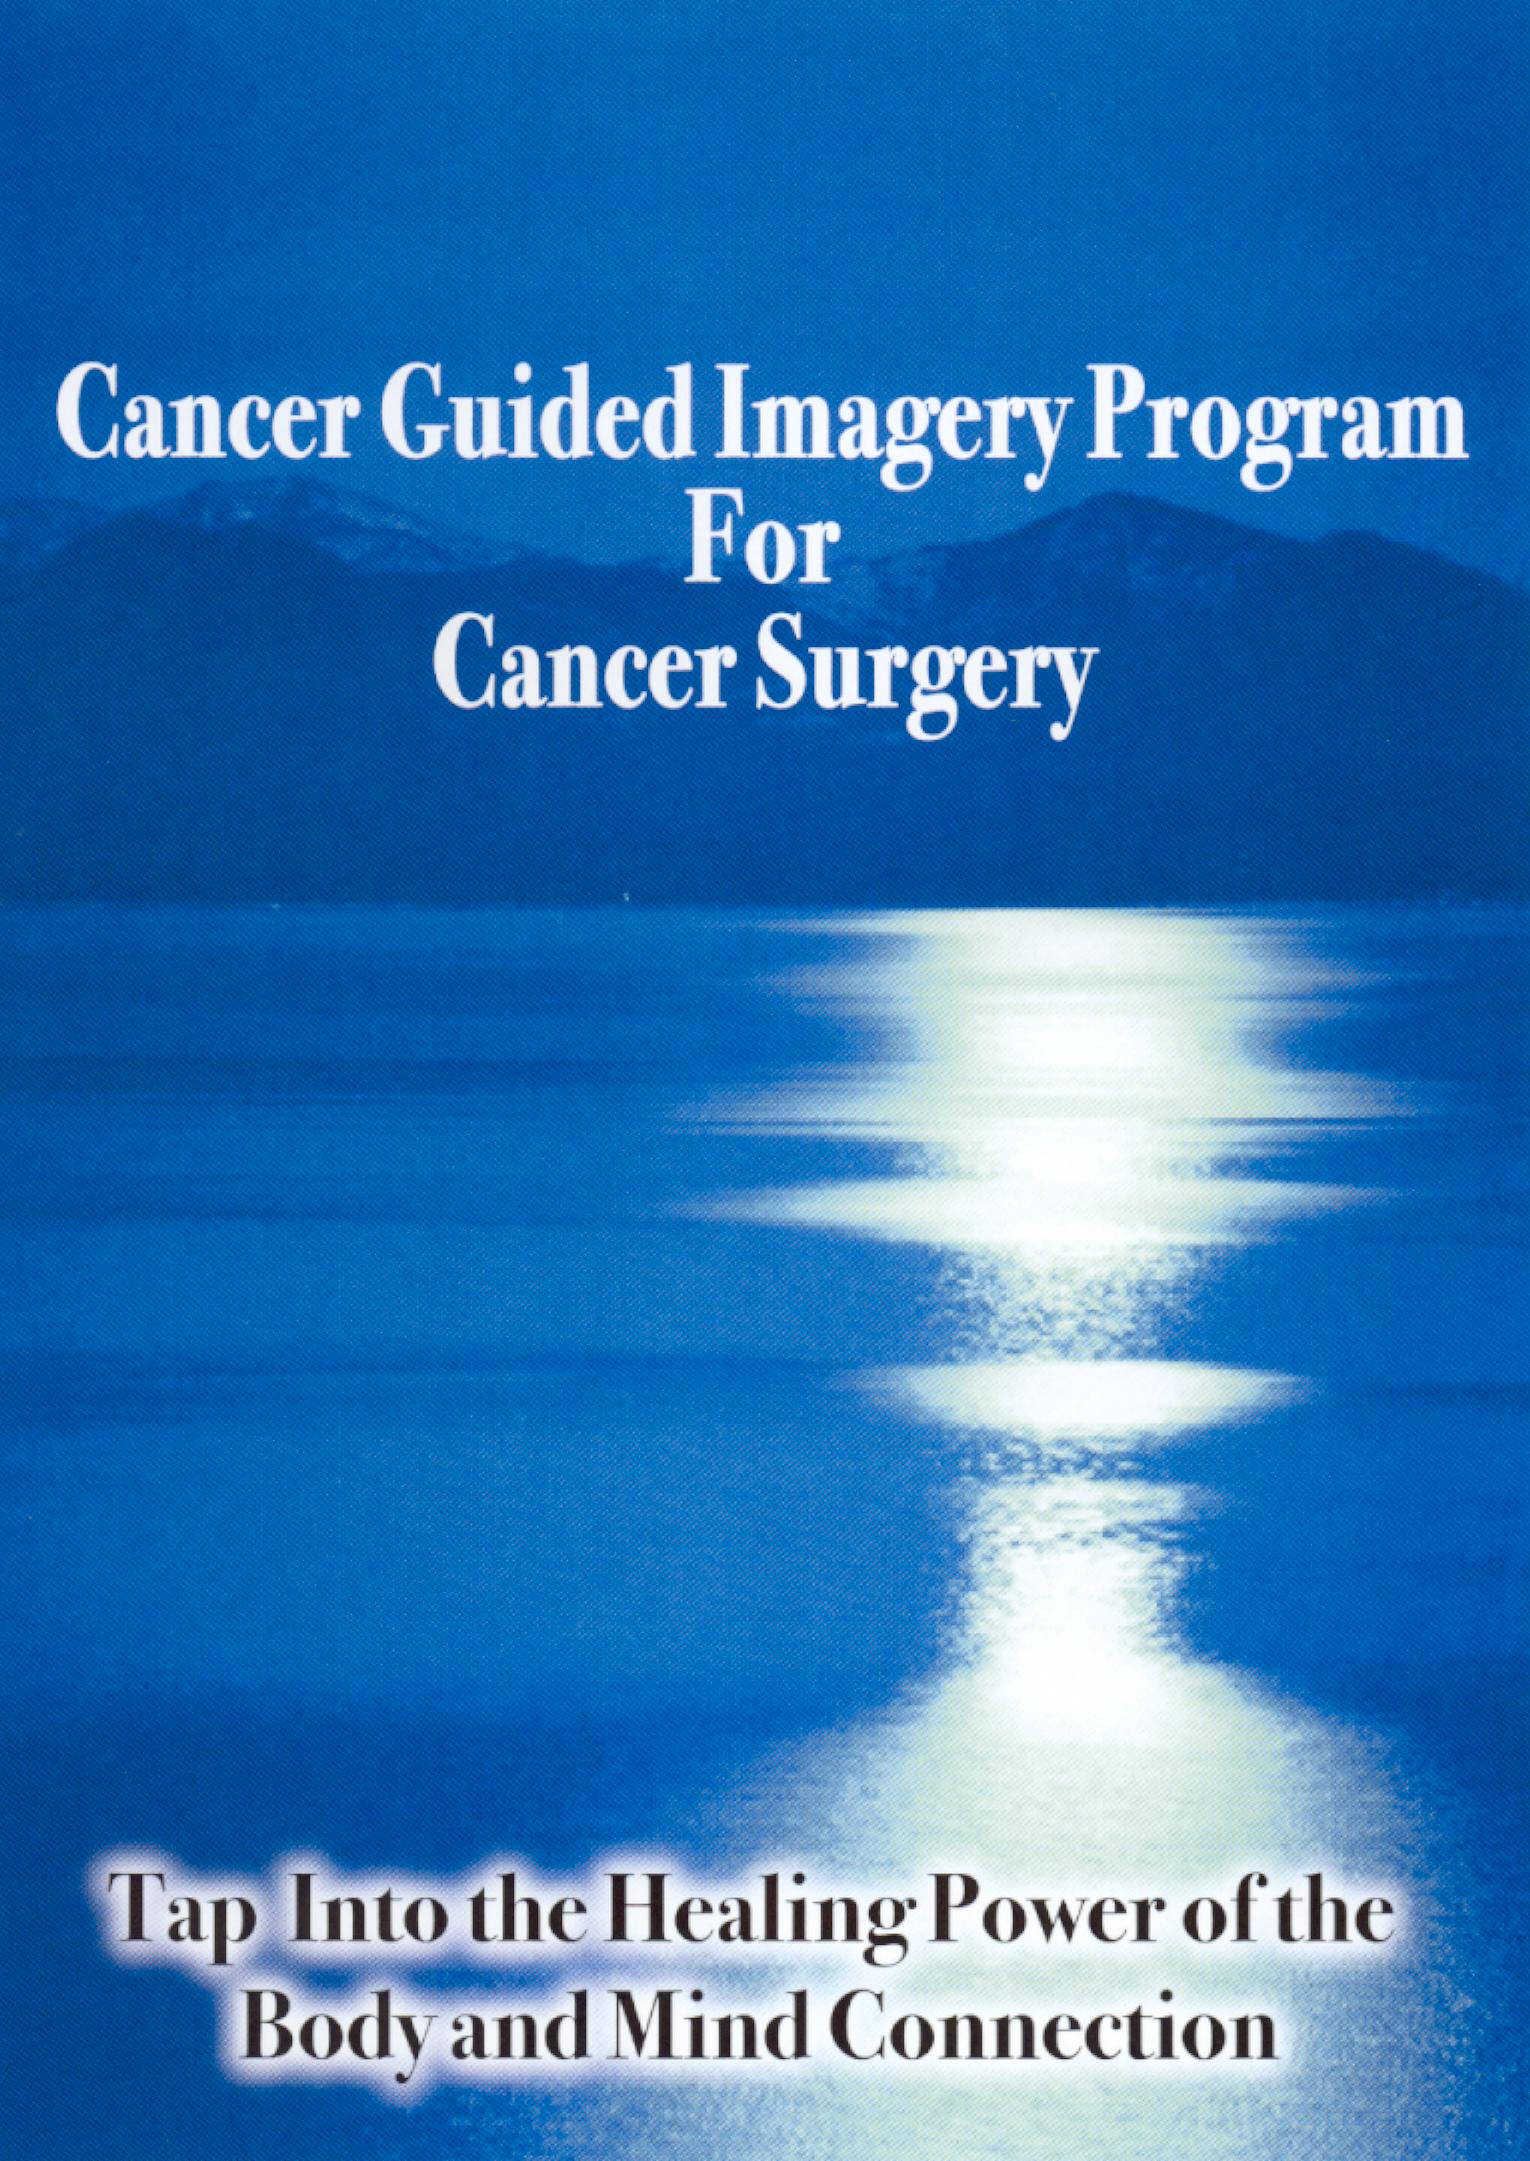 Cancer Guided Imagery Program for Cancer Surgery